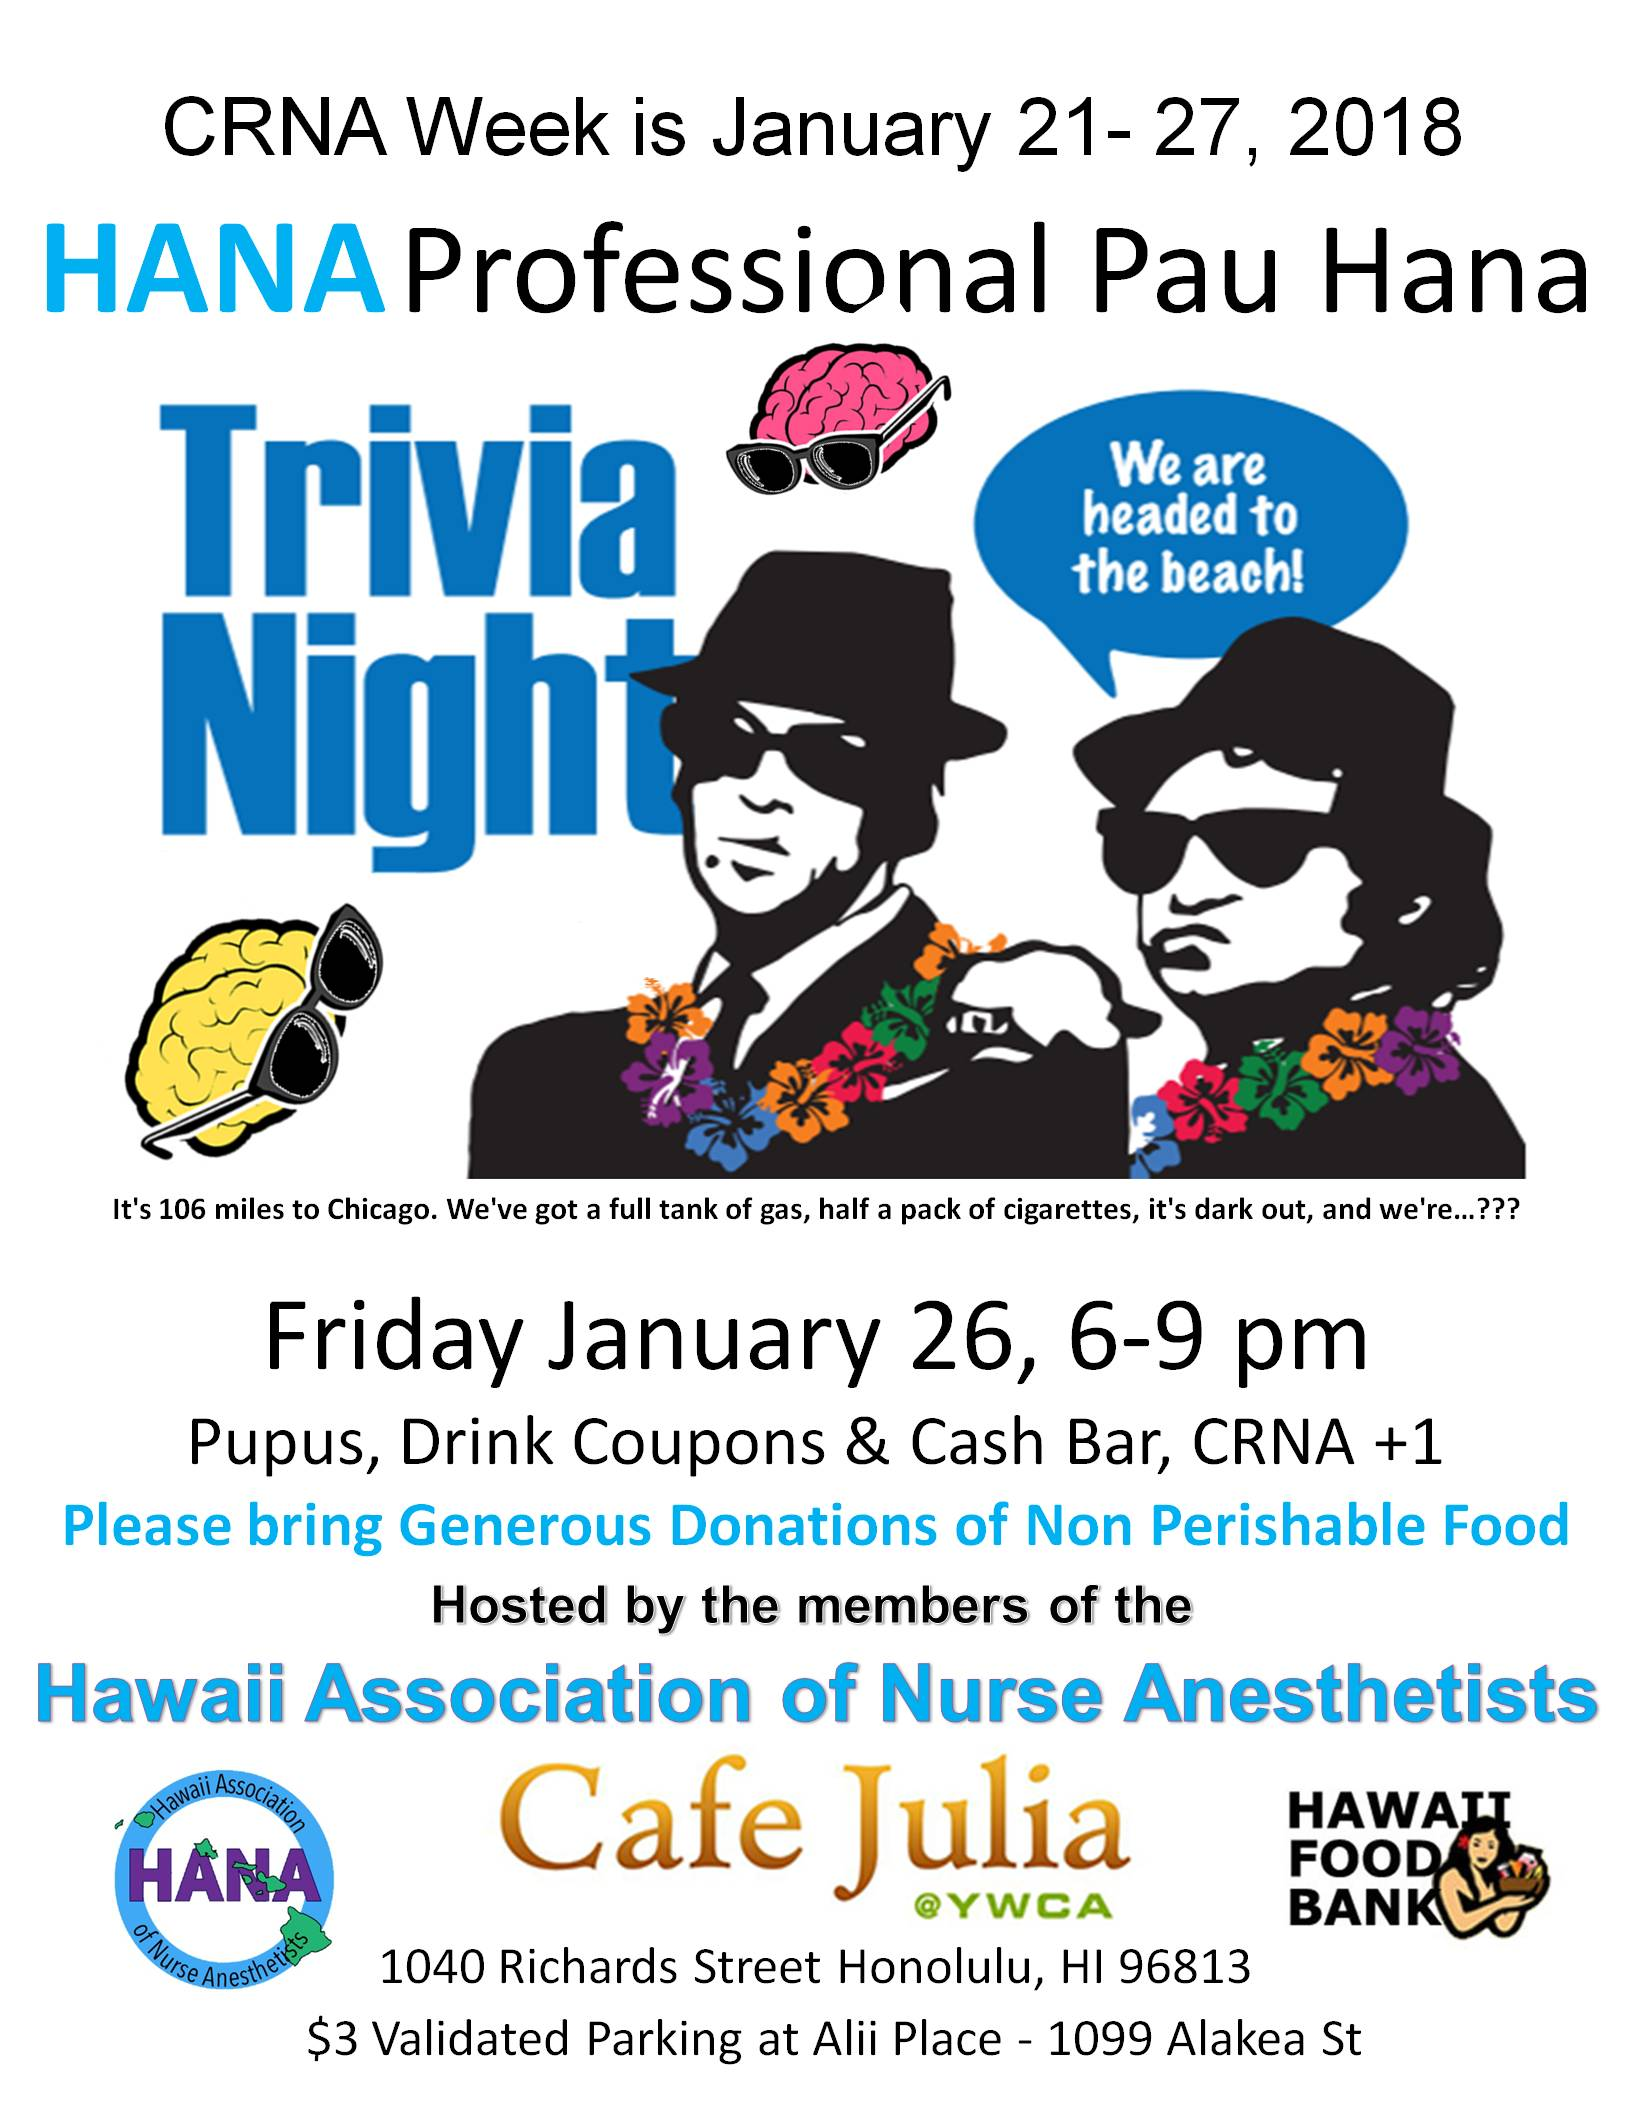 CRNA Week Trivia Night!  Cafe Julia  Jan. 26, 6-9 pm